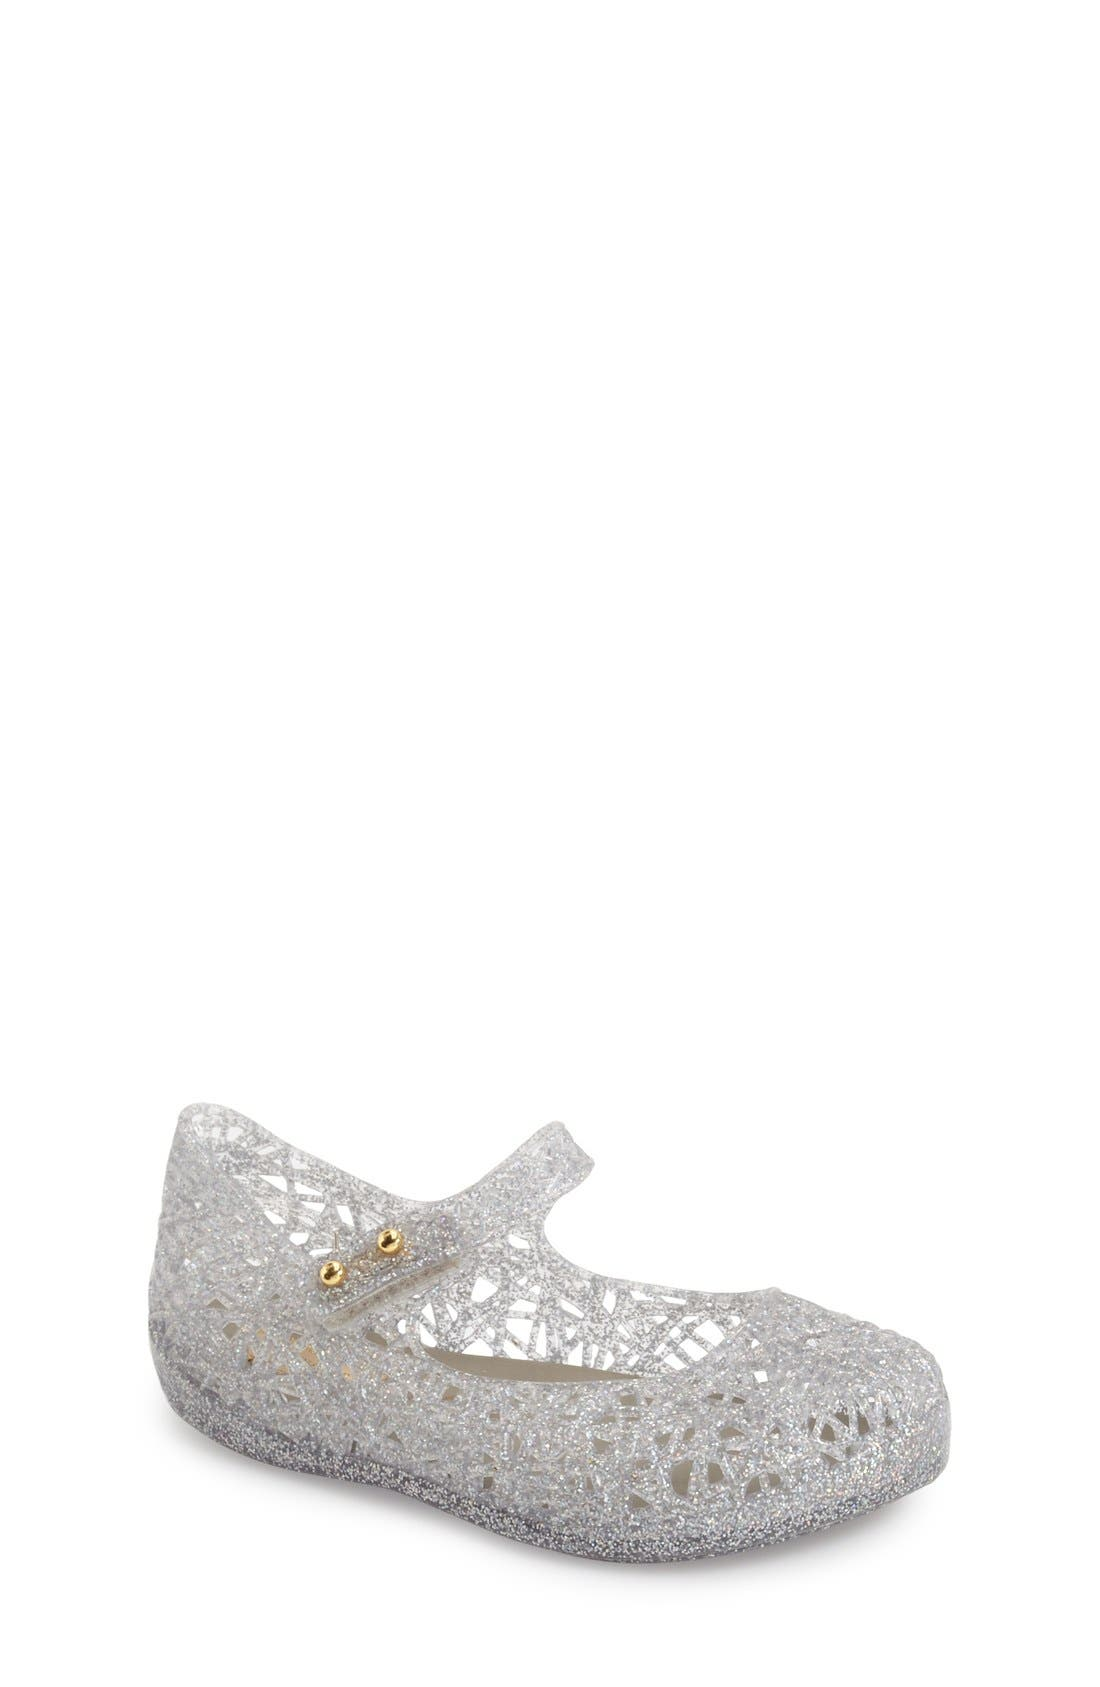 MINI MELISSA 'Campana' Mary Jane Flat